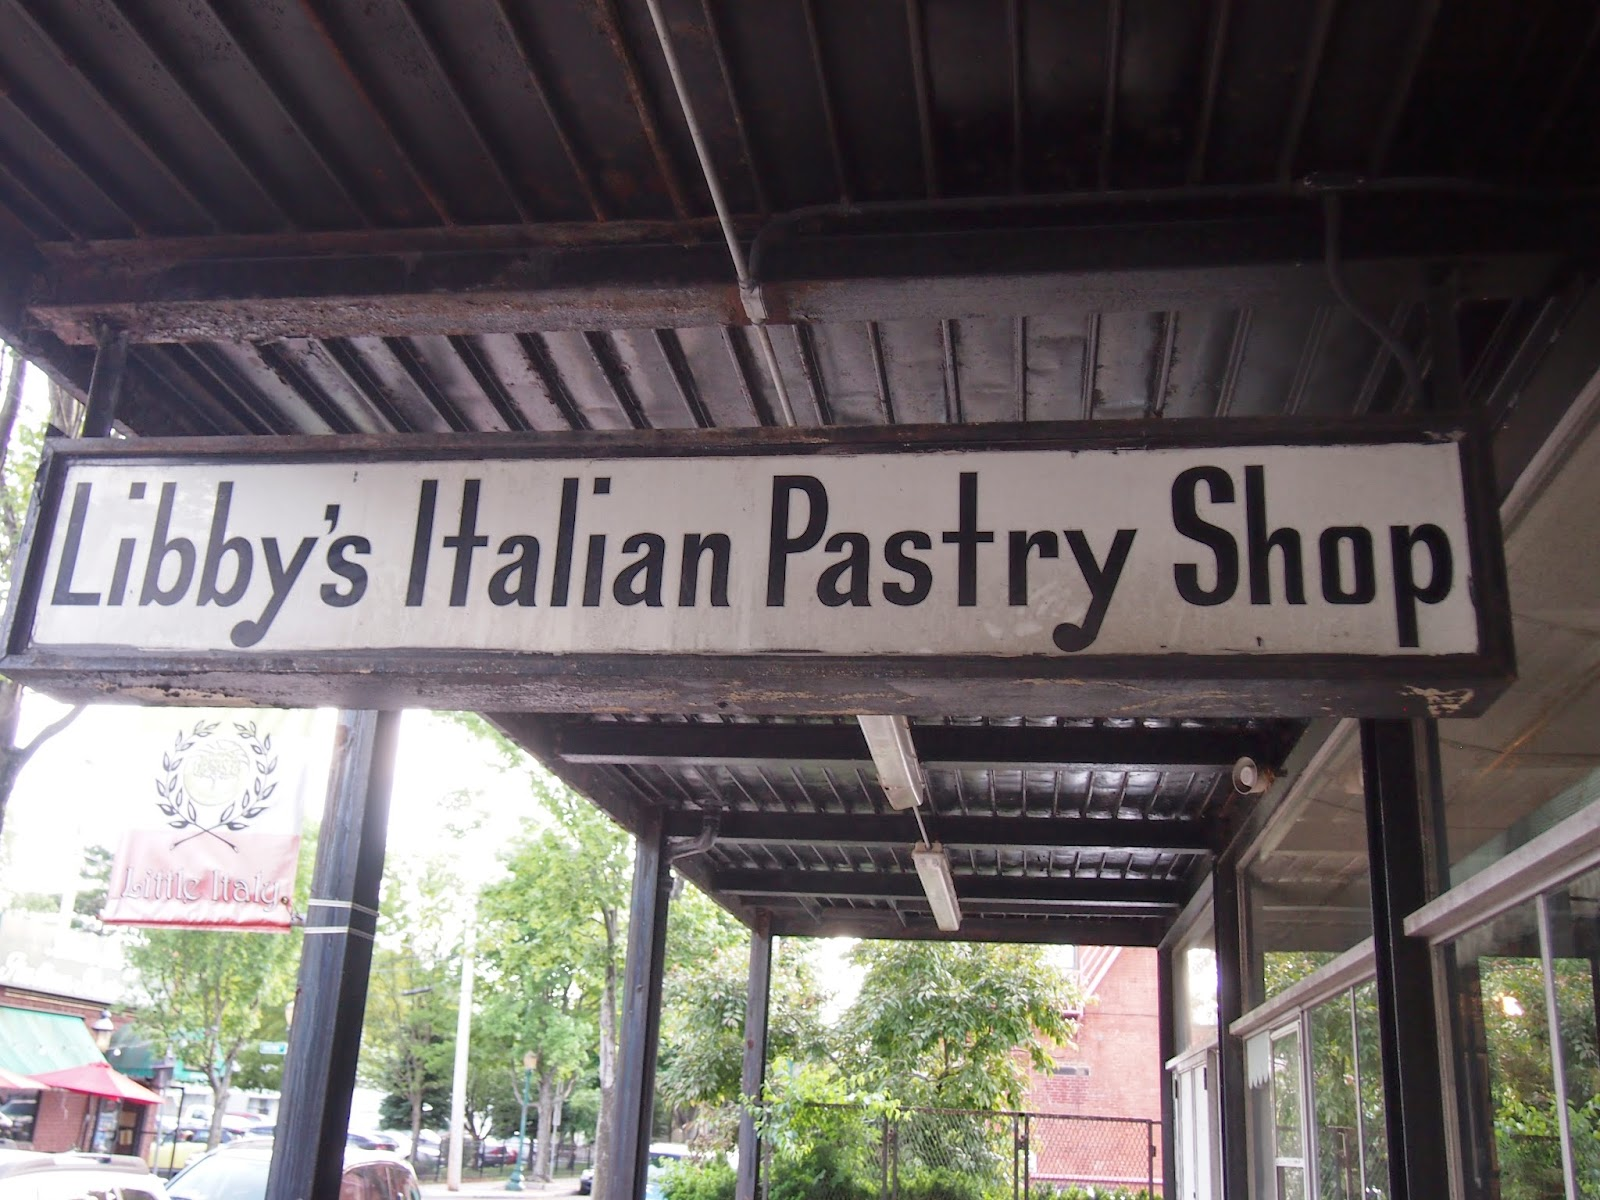 Libby's Italian pastry shop in new haven connecticut